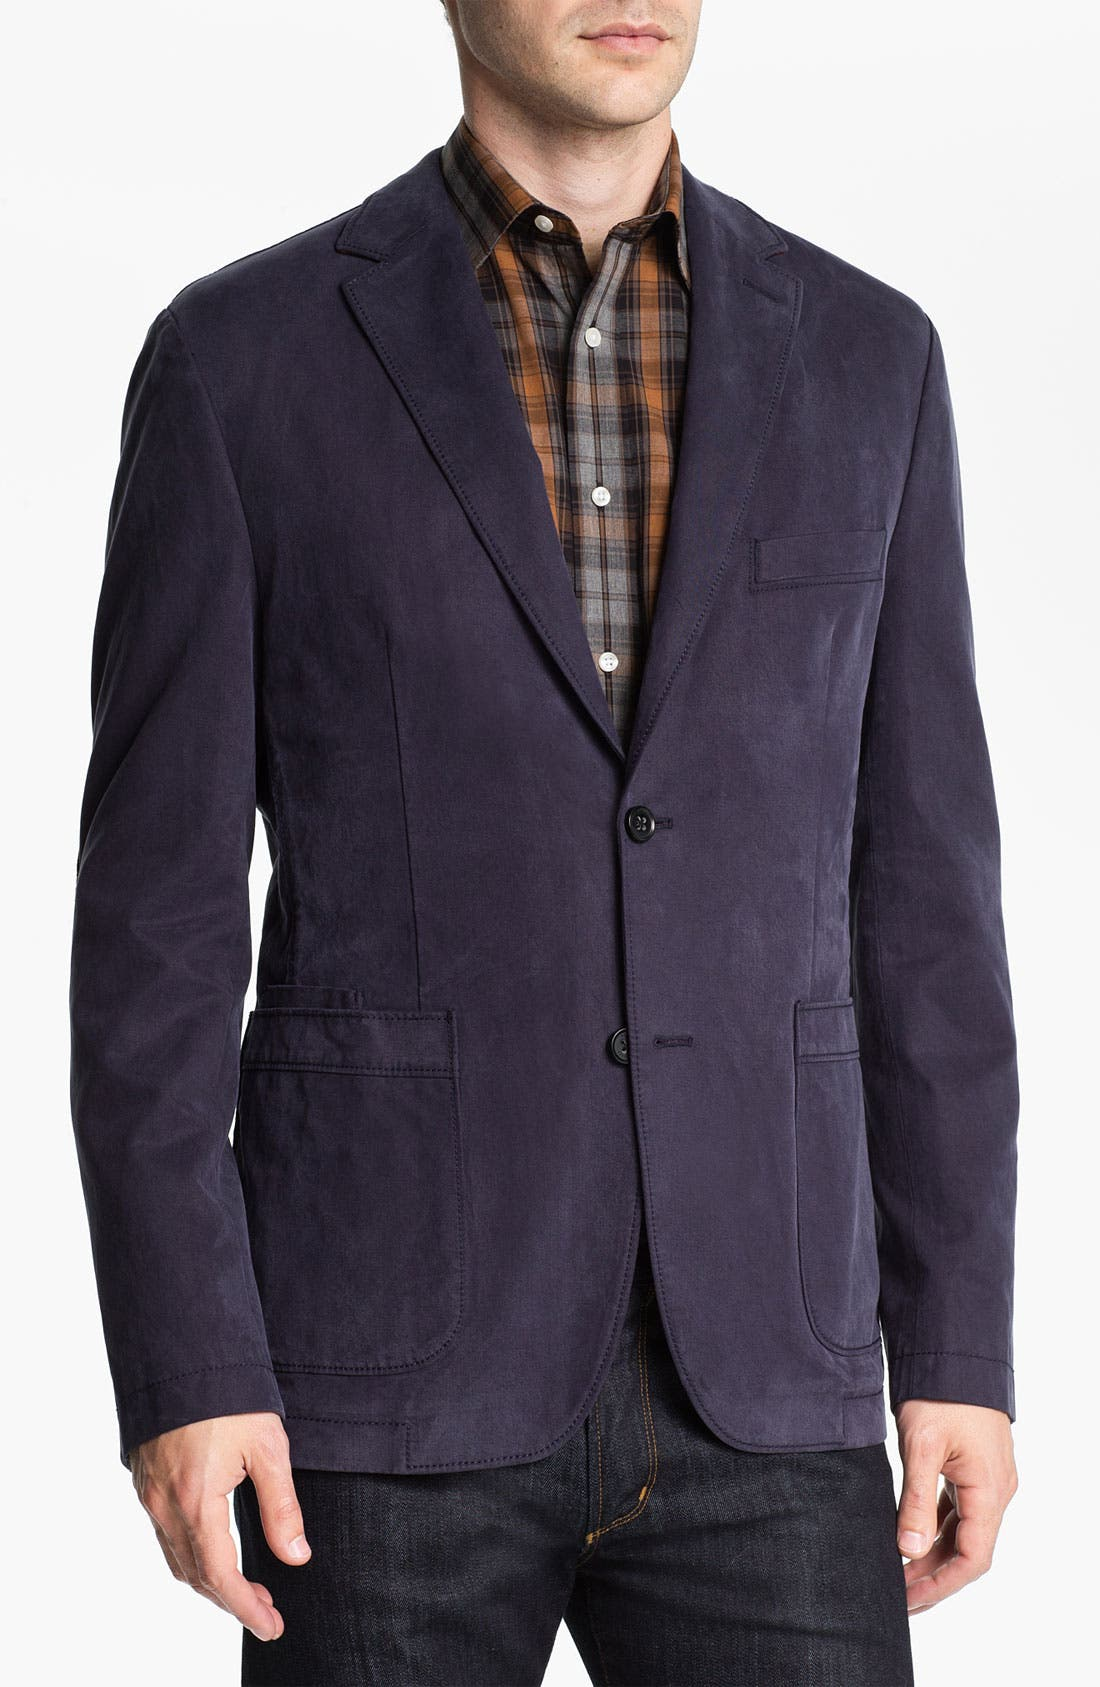 Alternate Image 1 Selected - BOSS Black 'Micon' Sportcoat